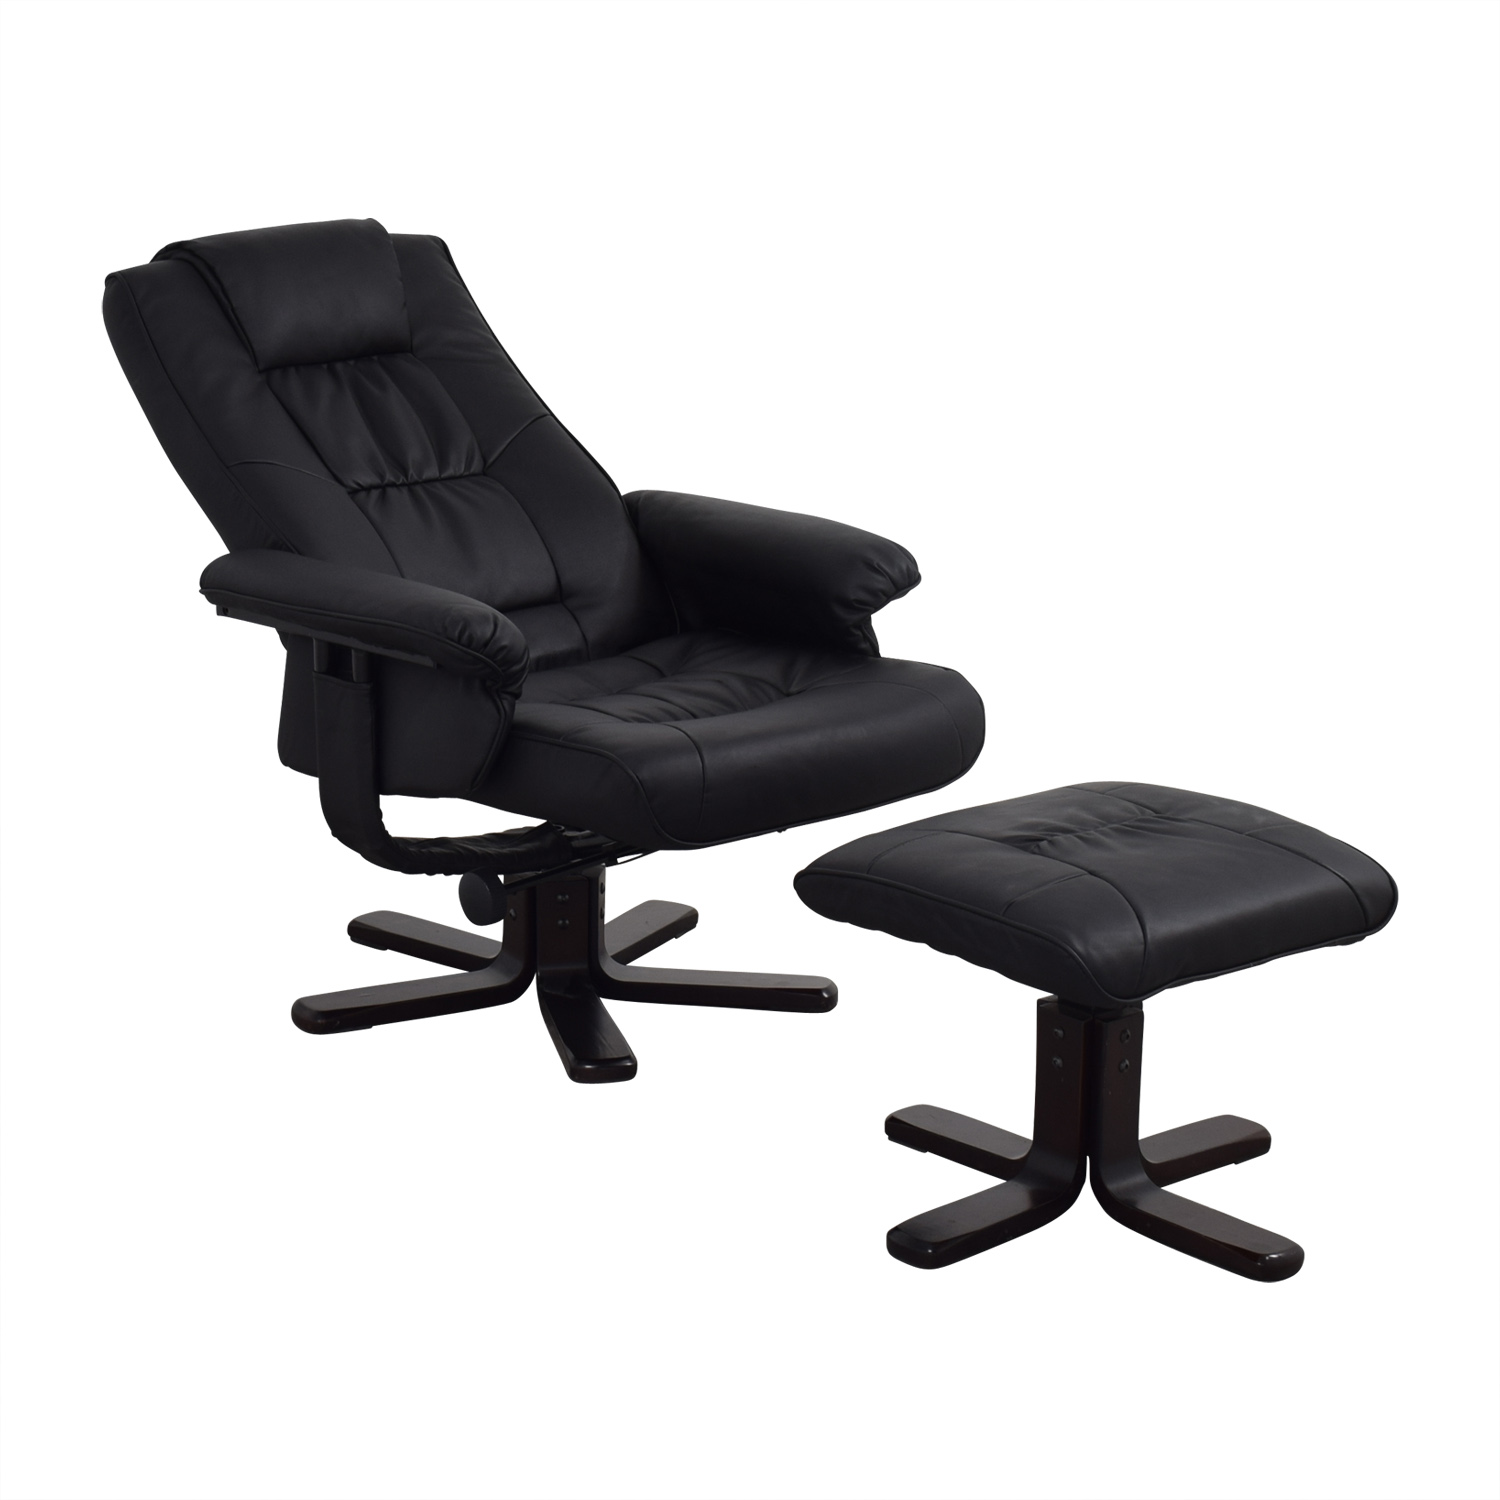 Coaster Black Reclining Chair And Foot Stool Chairs